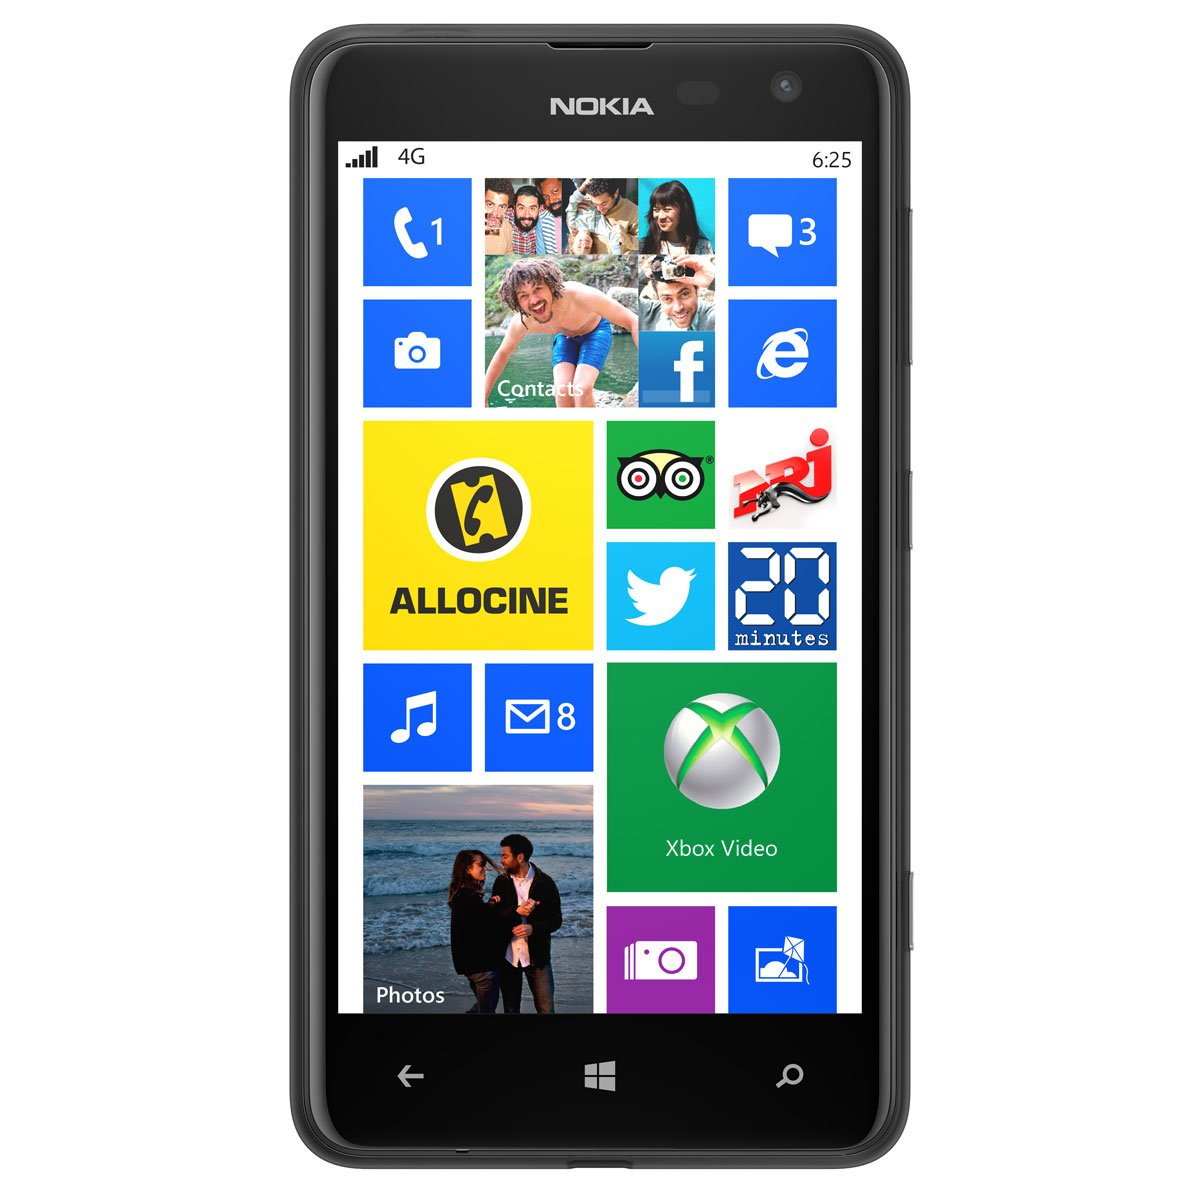 nokia lumia 625 price list. nokia lumia 625 price list